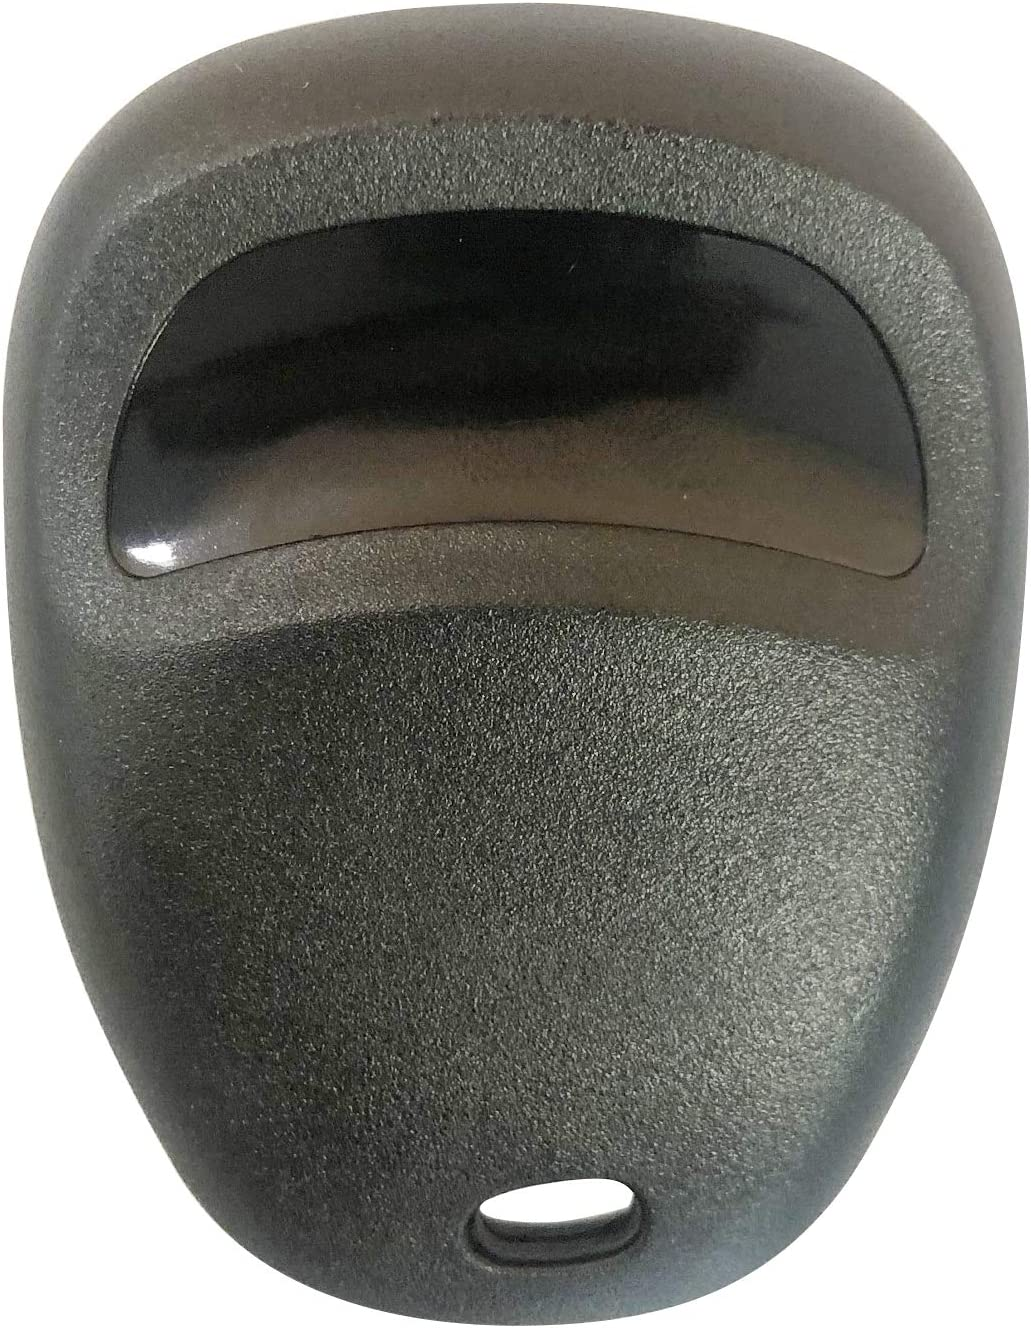 25665574 Keyless Entry Remote Car Key Fob Replacement for KOBUT1BT 25665575,25678792 ;by AUTO KEY MAX 1